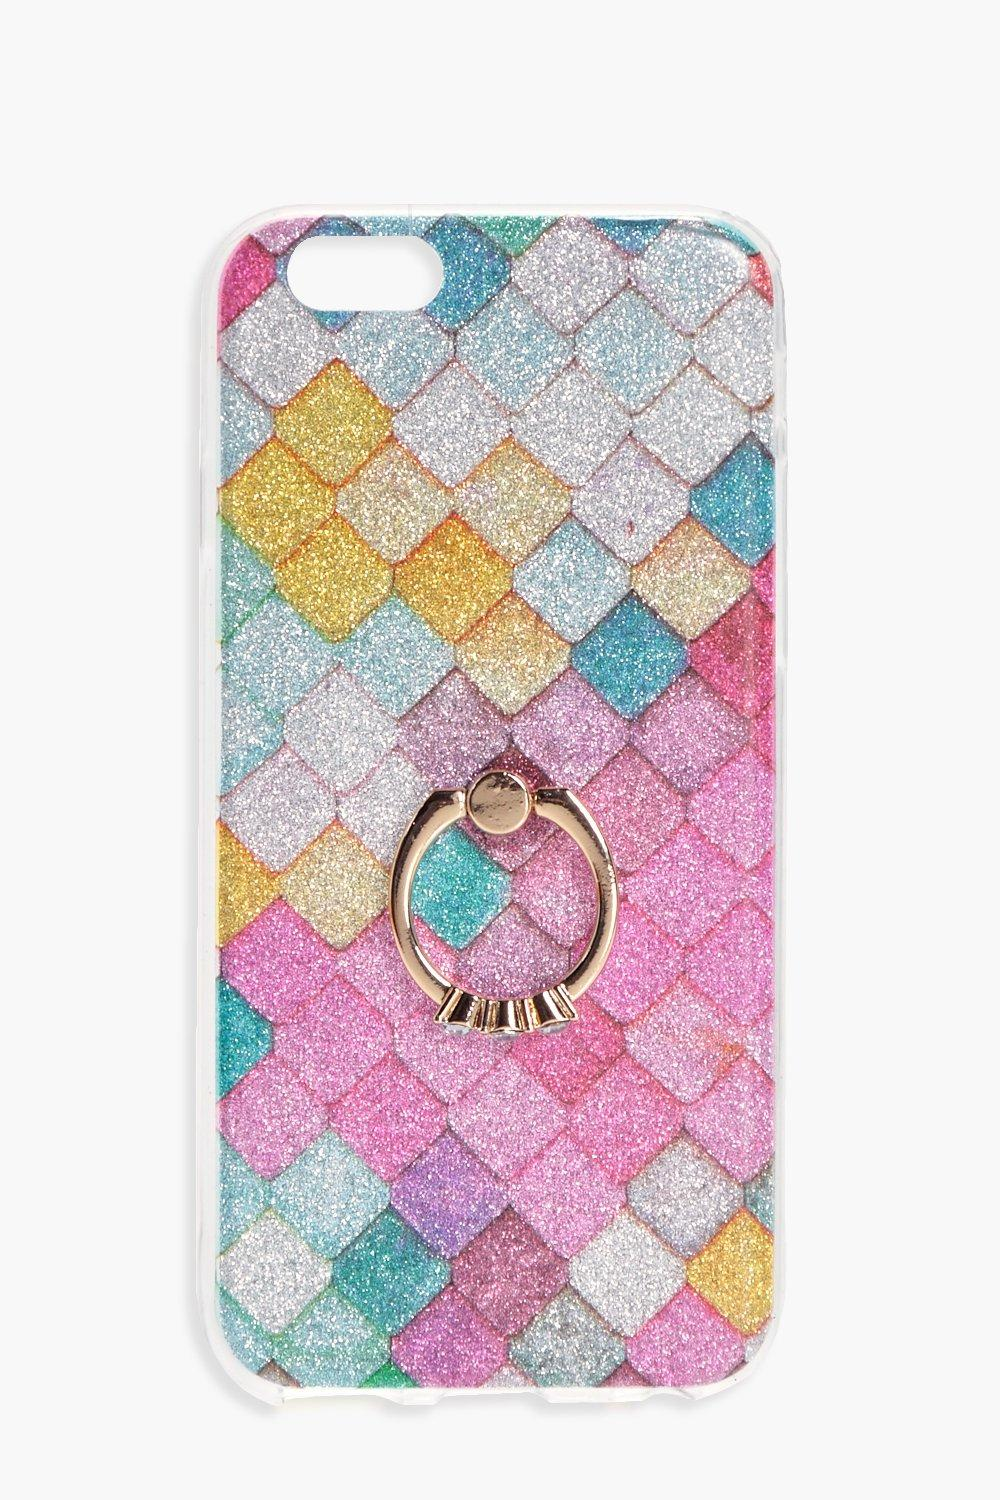 iPhone 6 Case - pink - Tiled iPhone 6 Case - pink